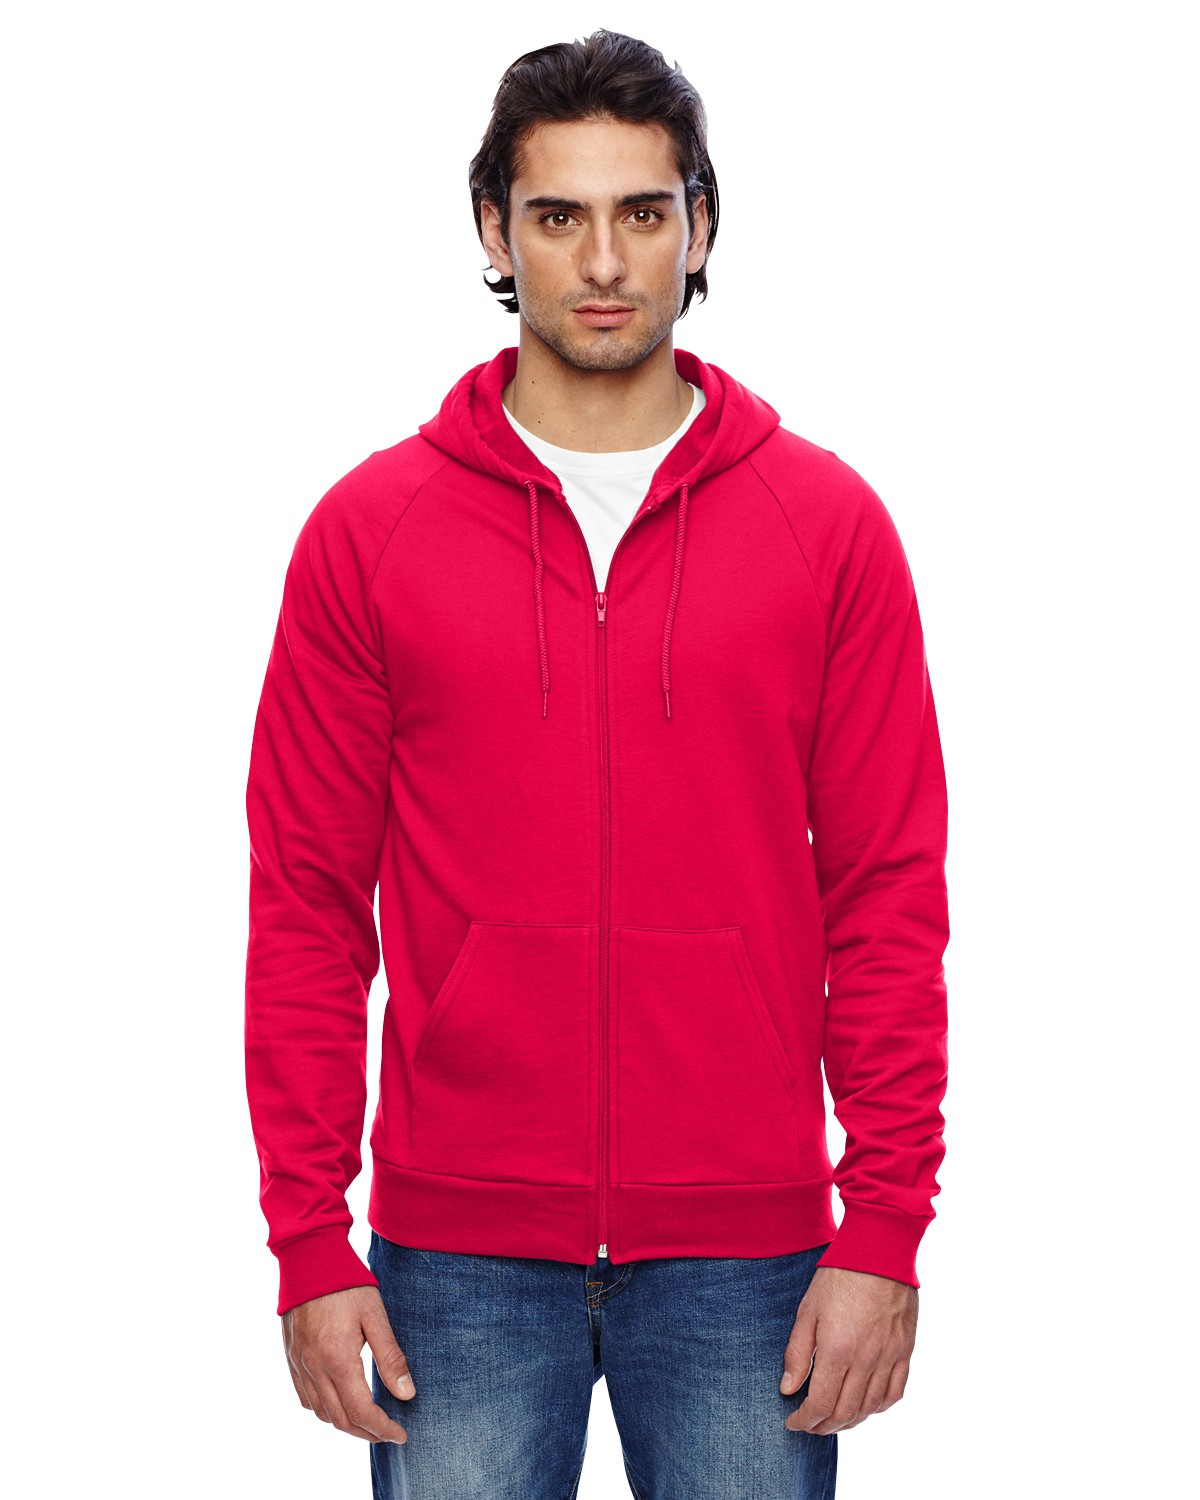 5497W American Apparel RED